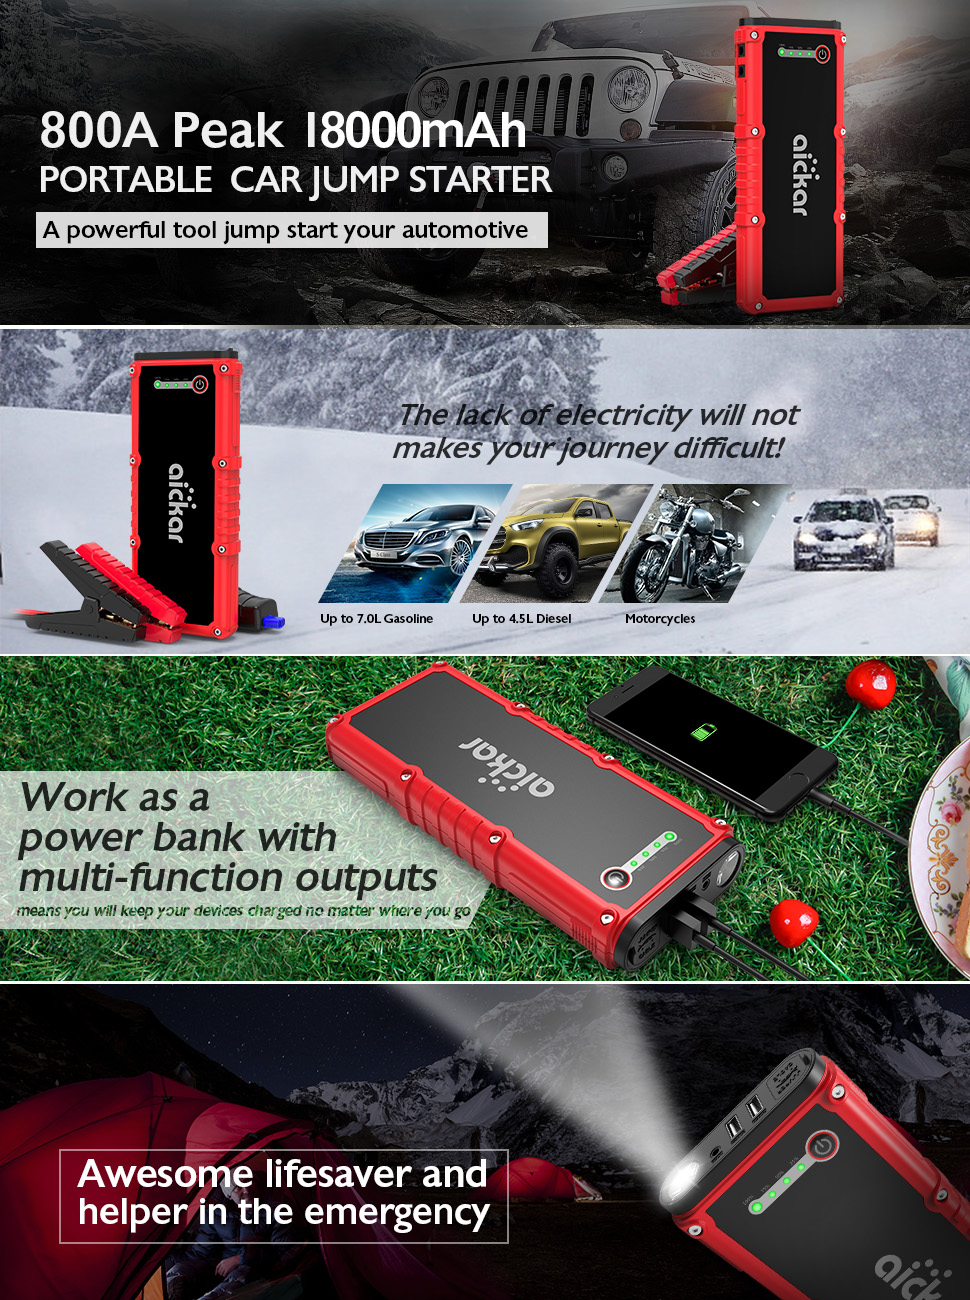 aickar 800A Peak 18000mAh Car Jump Starter(Up to 7 0L Gas or 4 5L Diesel  Engine), 12V Auto Battery Booster Portable Power Pack, Built-in LED